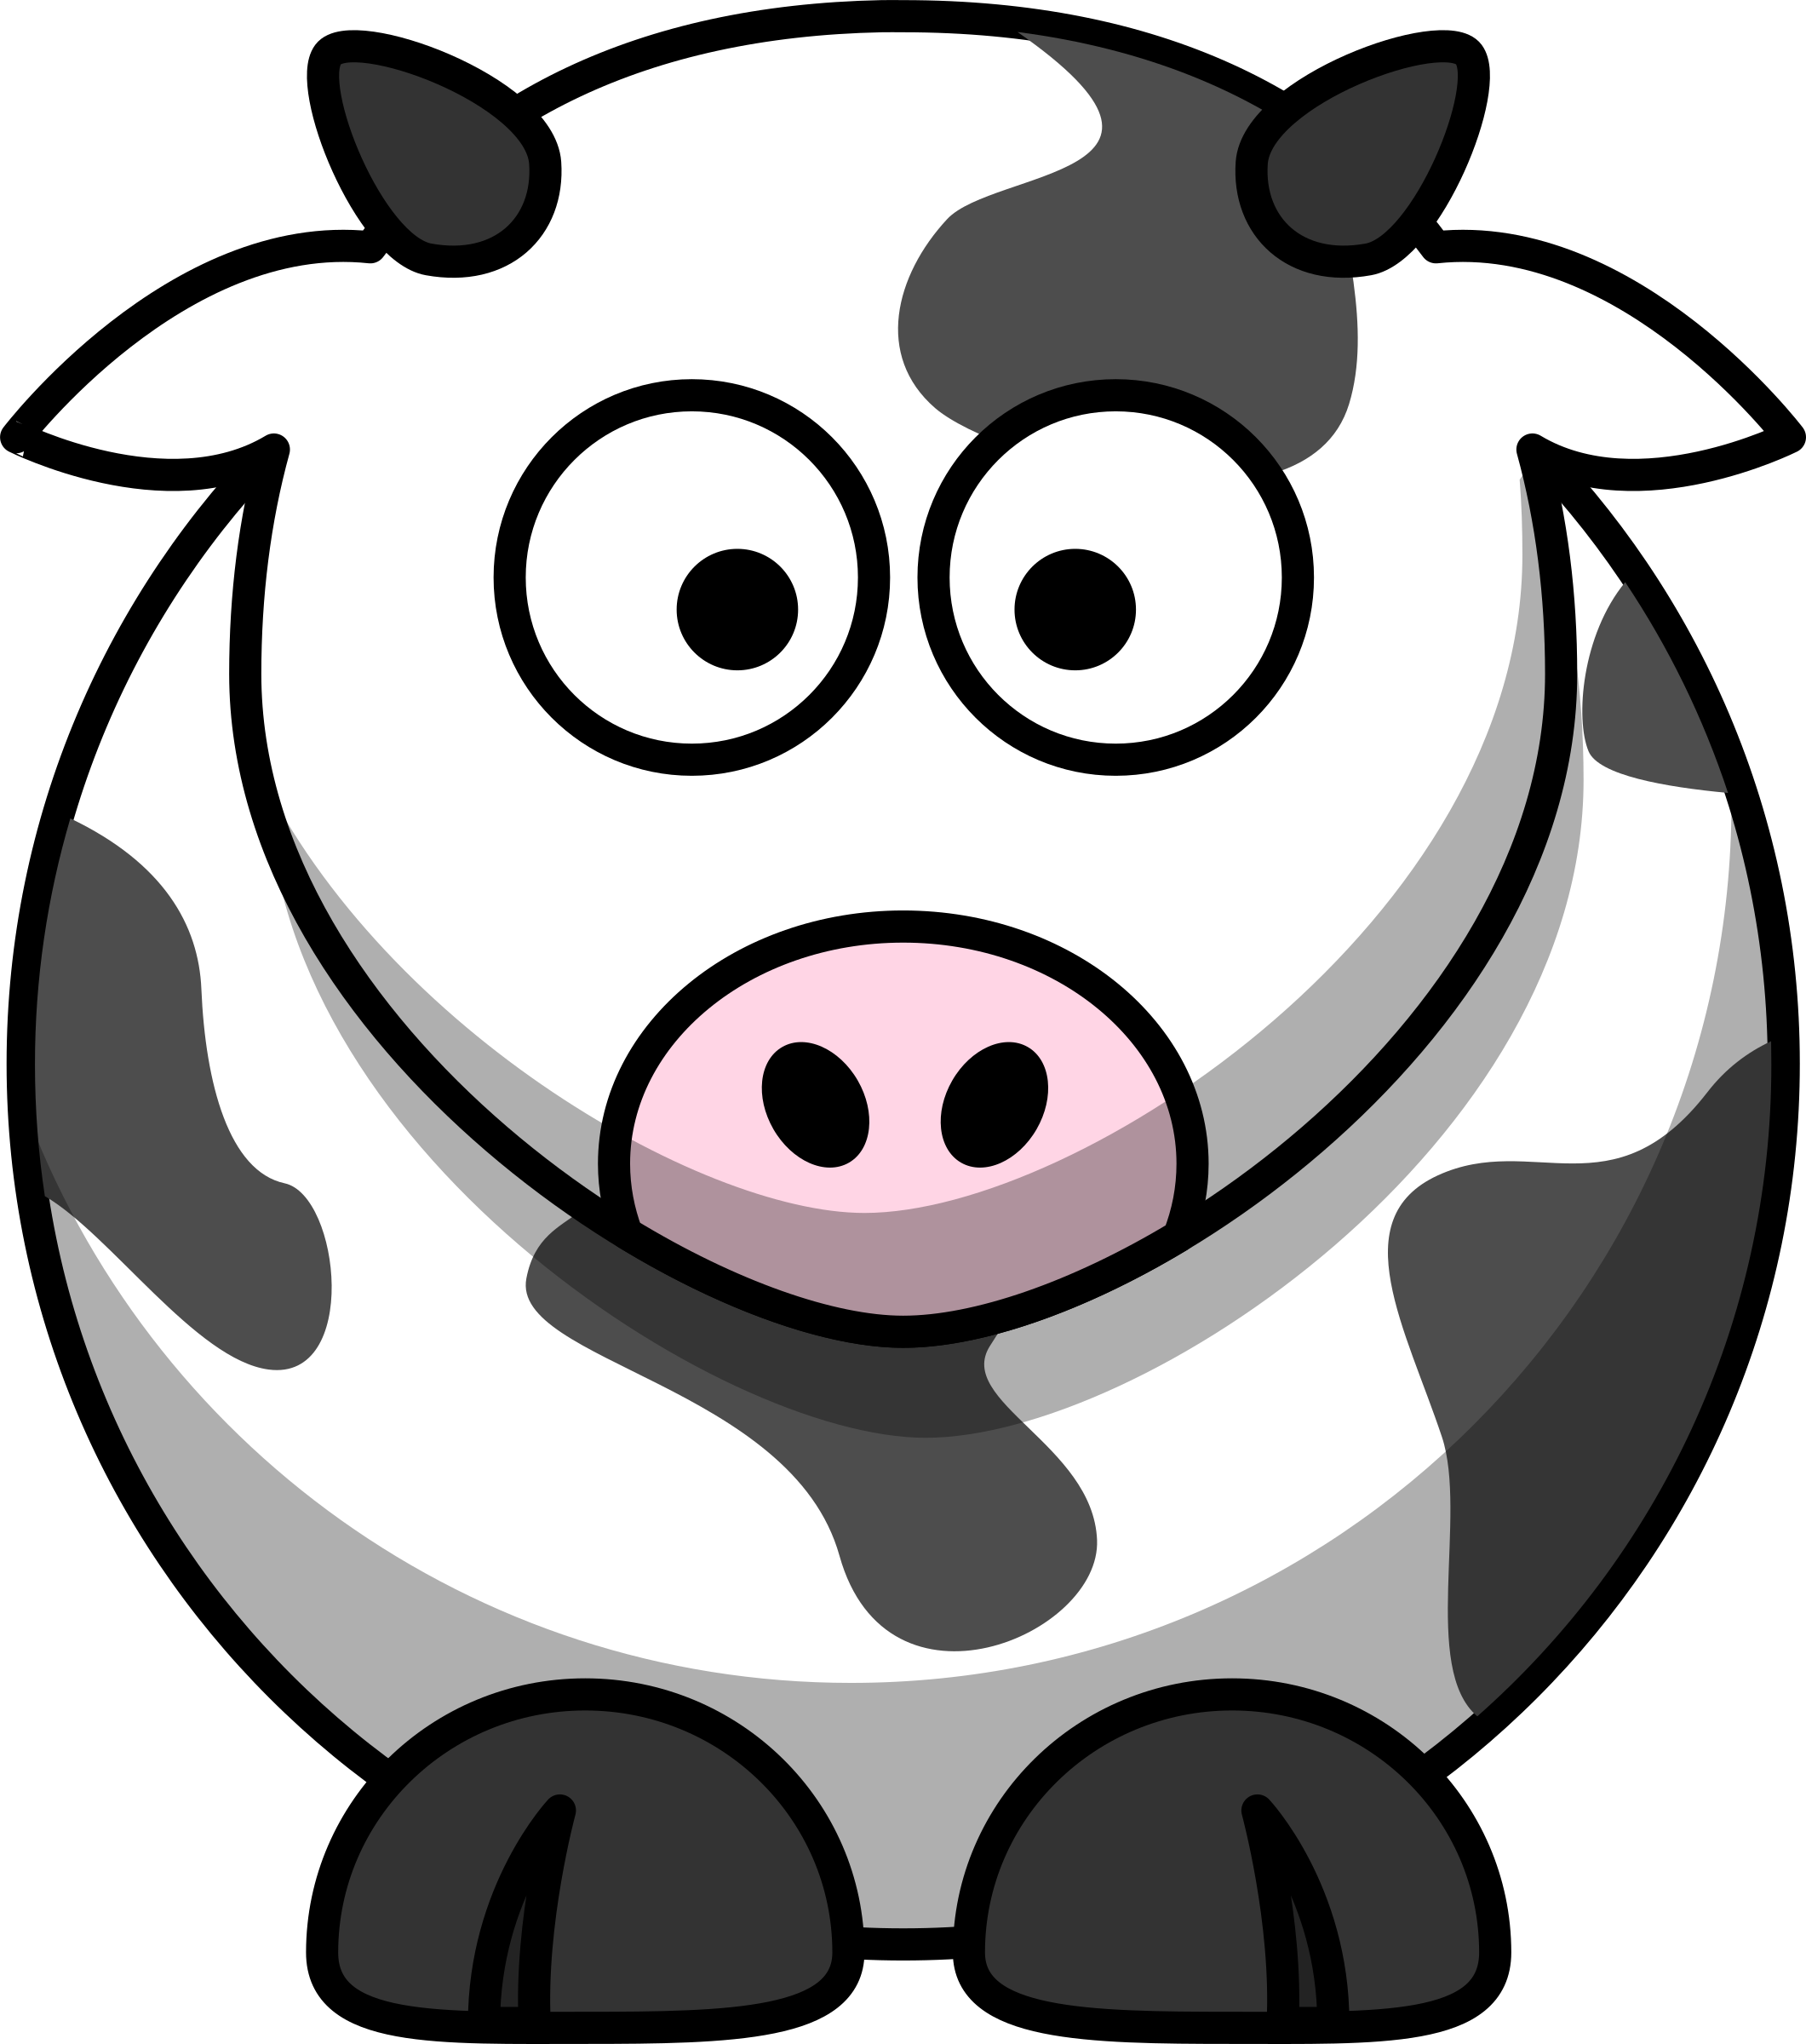 Clipart - Cartoon cow